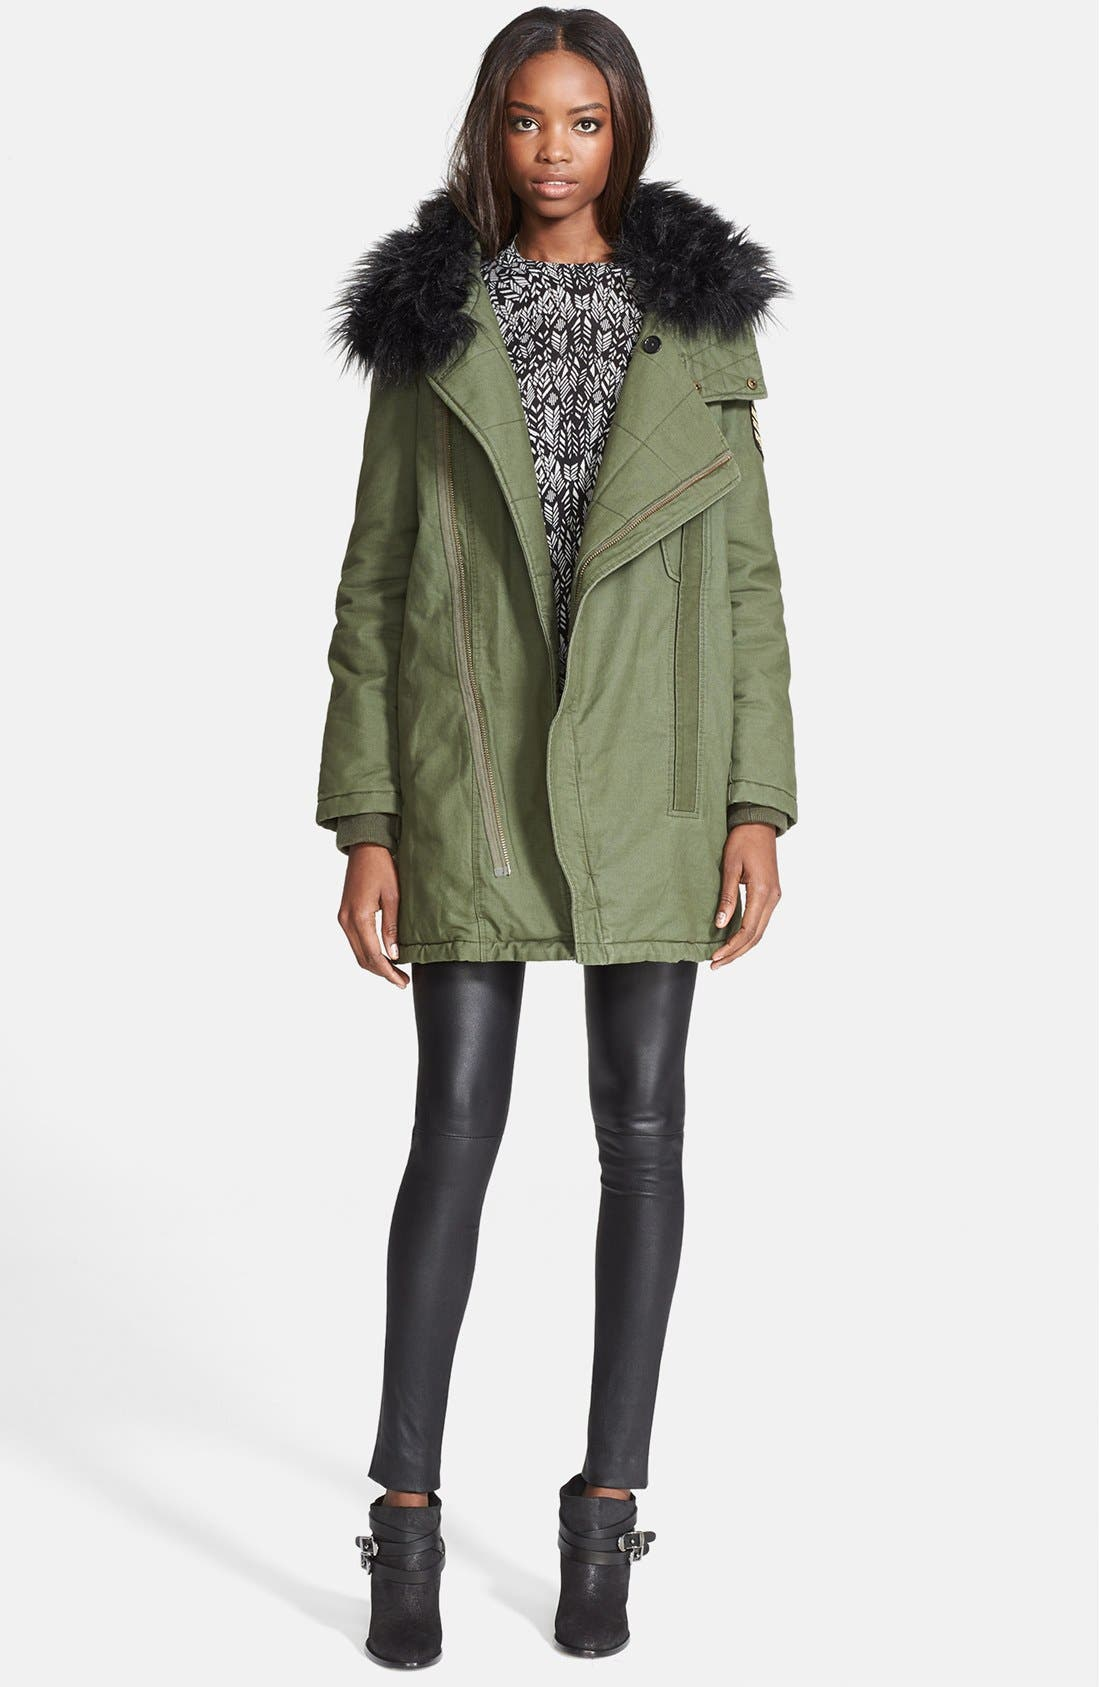 Alternate Image 1 Selected - Zadig & Voltaire 'Kily' Faux Fur Collar Military Jacket